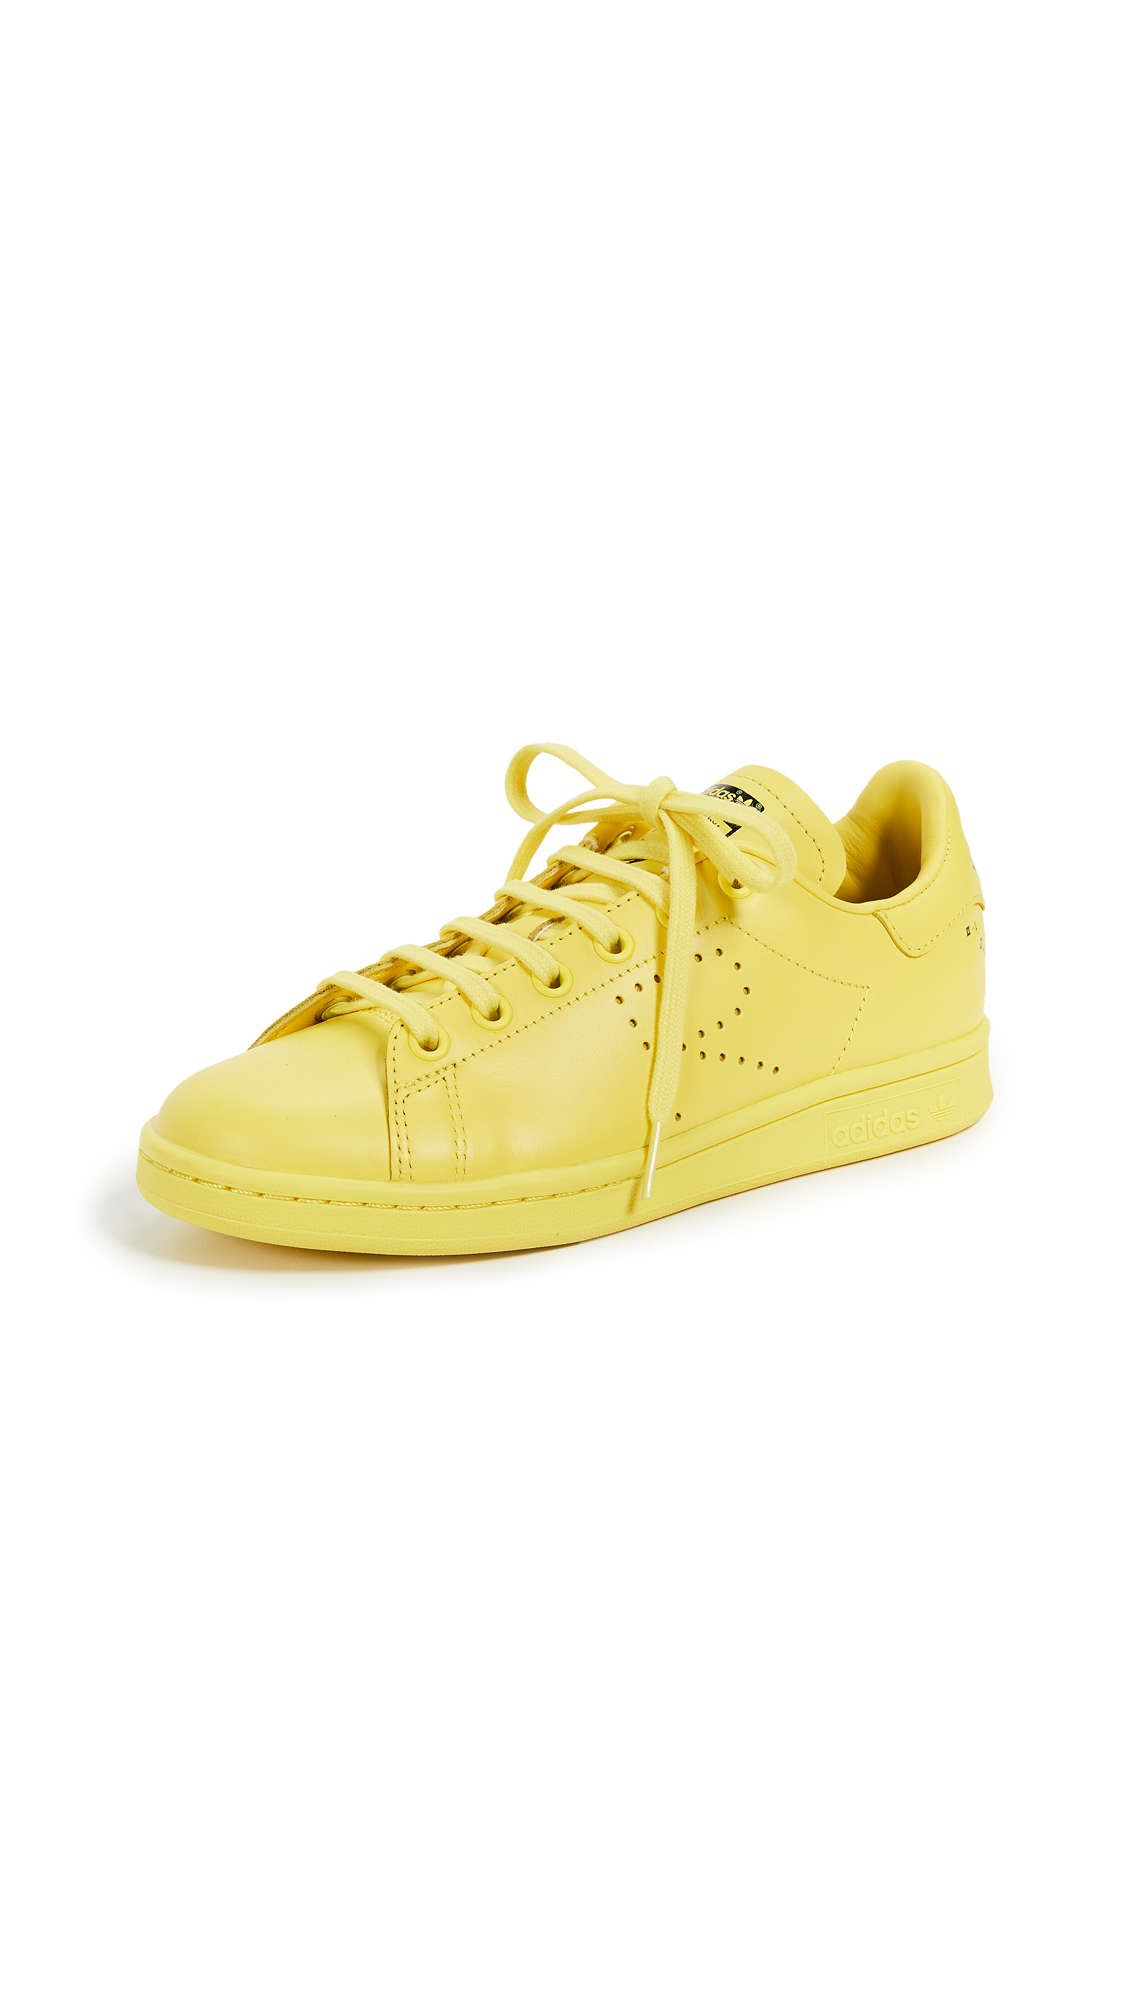 Adidas Raf Simons Stan Smith Sneakers - Yellow